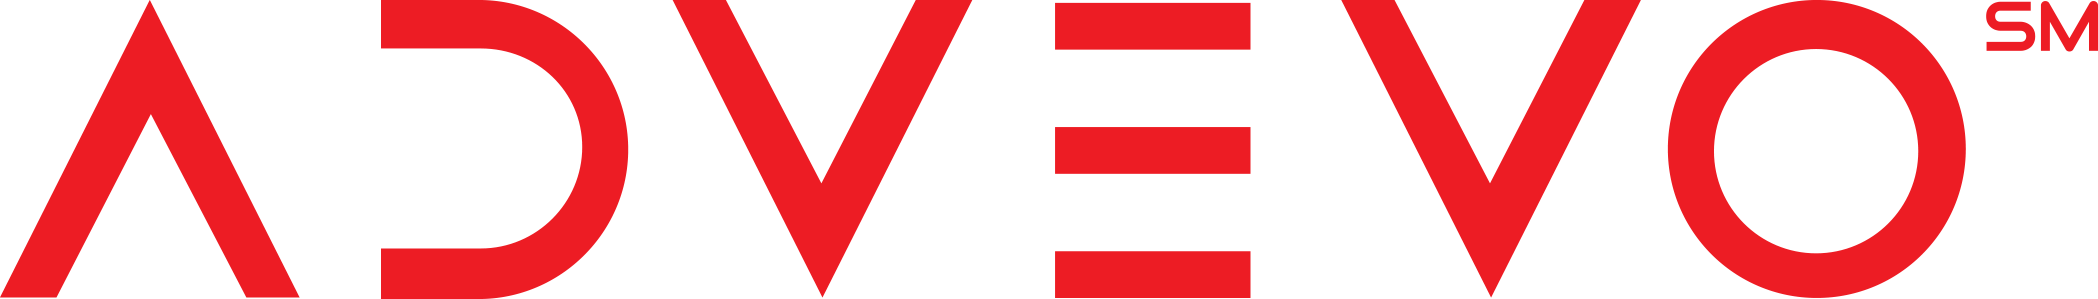 ADVEVO_PRIMARY_LOGO